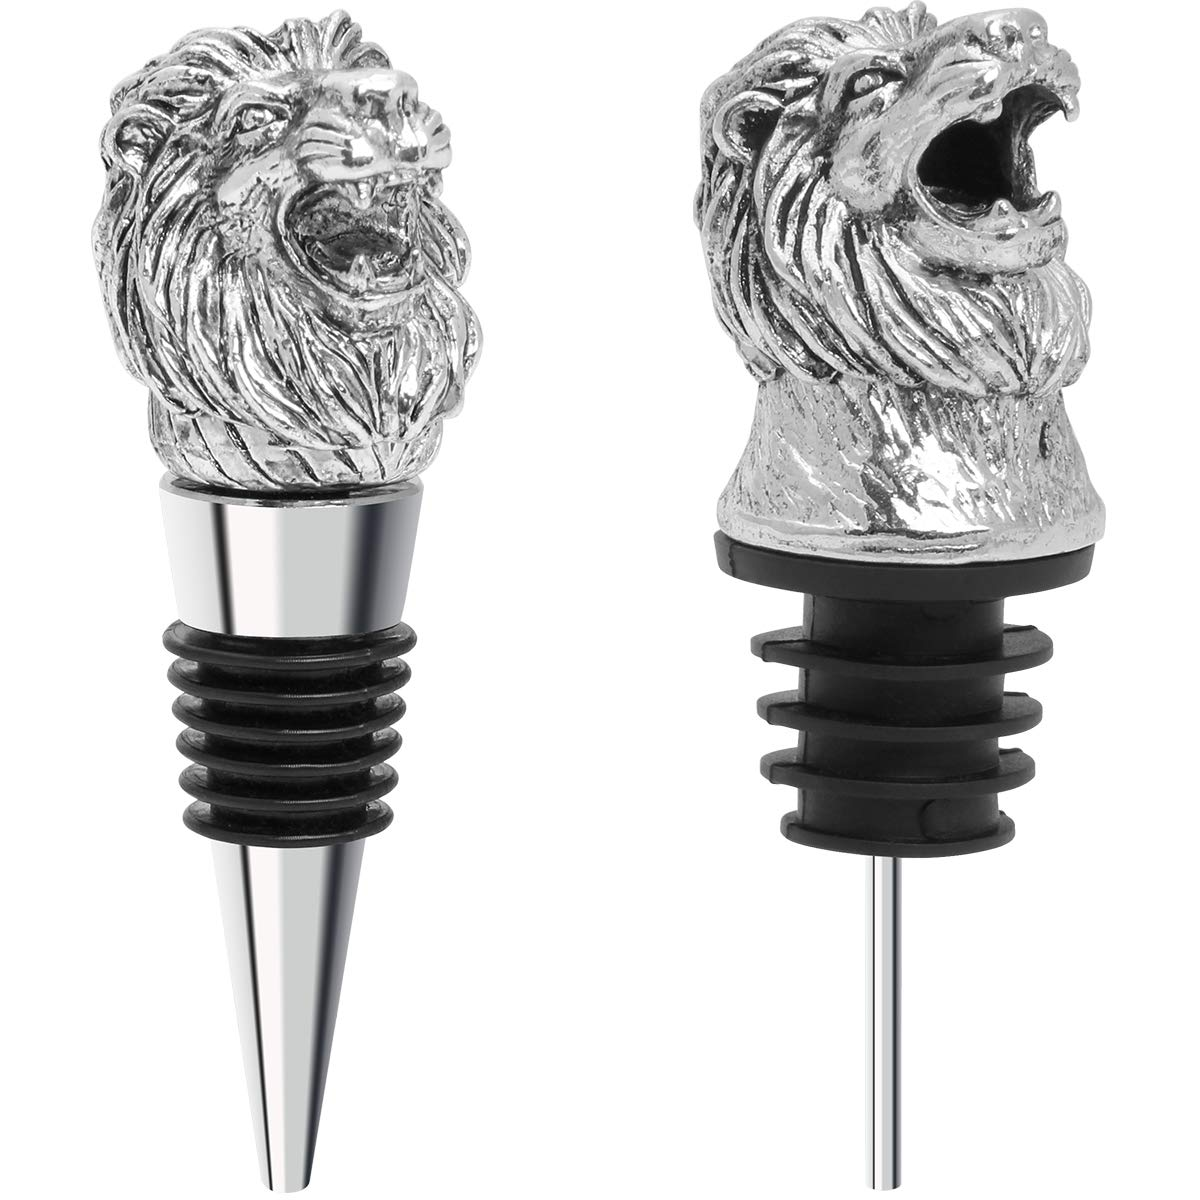 Coitak Lion Head Wine Pourer Spout, Wine Bottle Stopper for Home and bar, Animal Wine Pourer and Stopper With Silicone Rubber Fitting